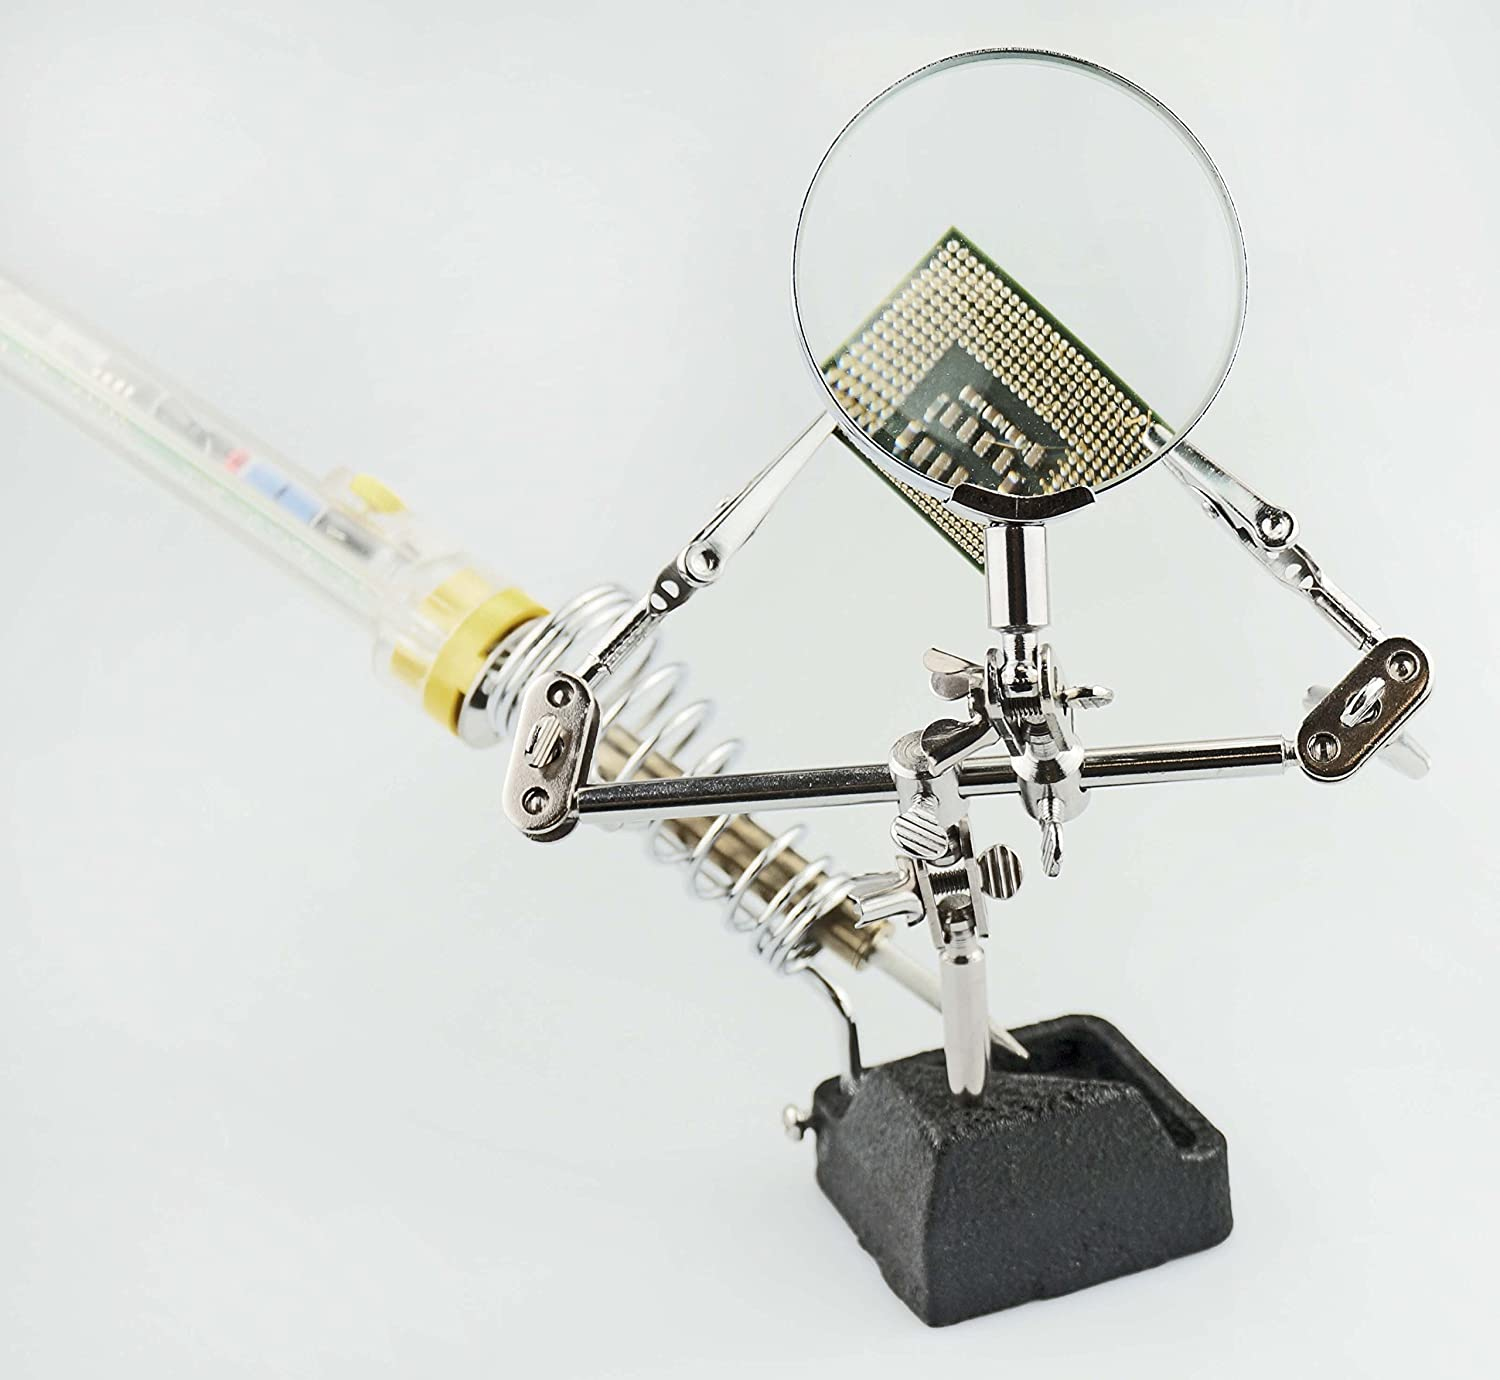 MZ109 SE Soldering Station with Helping Hand 4x Magnification